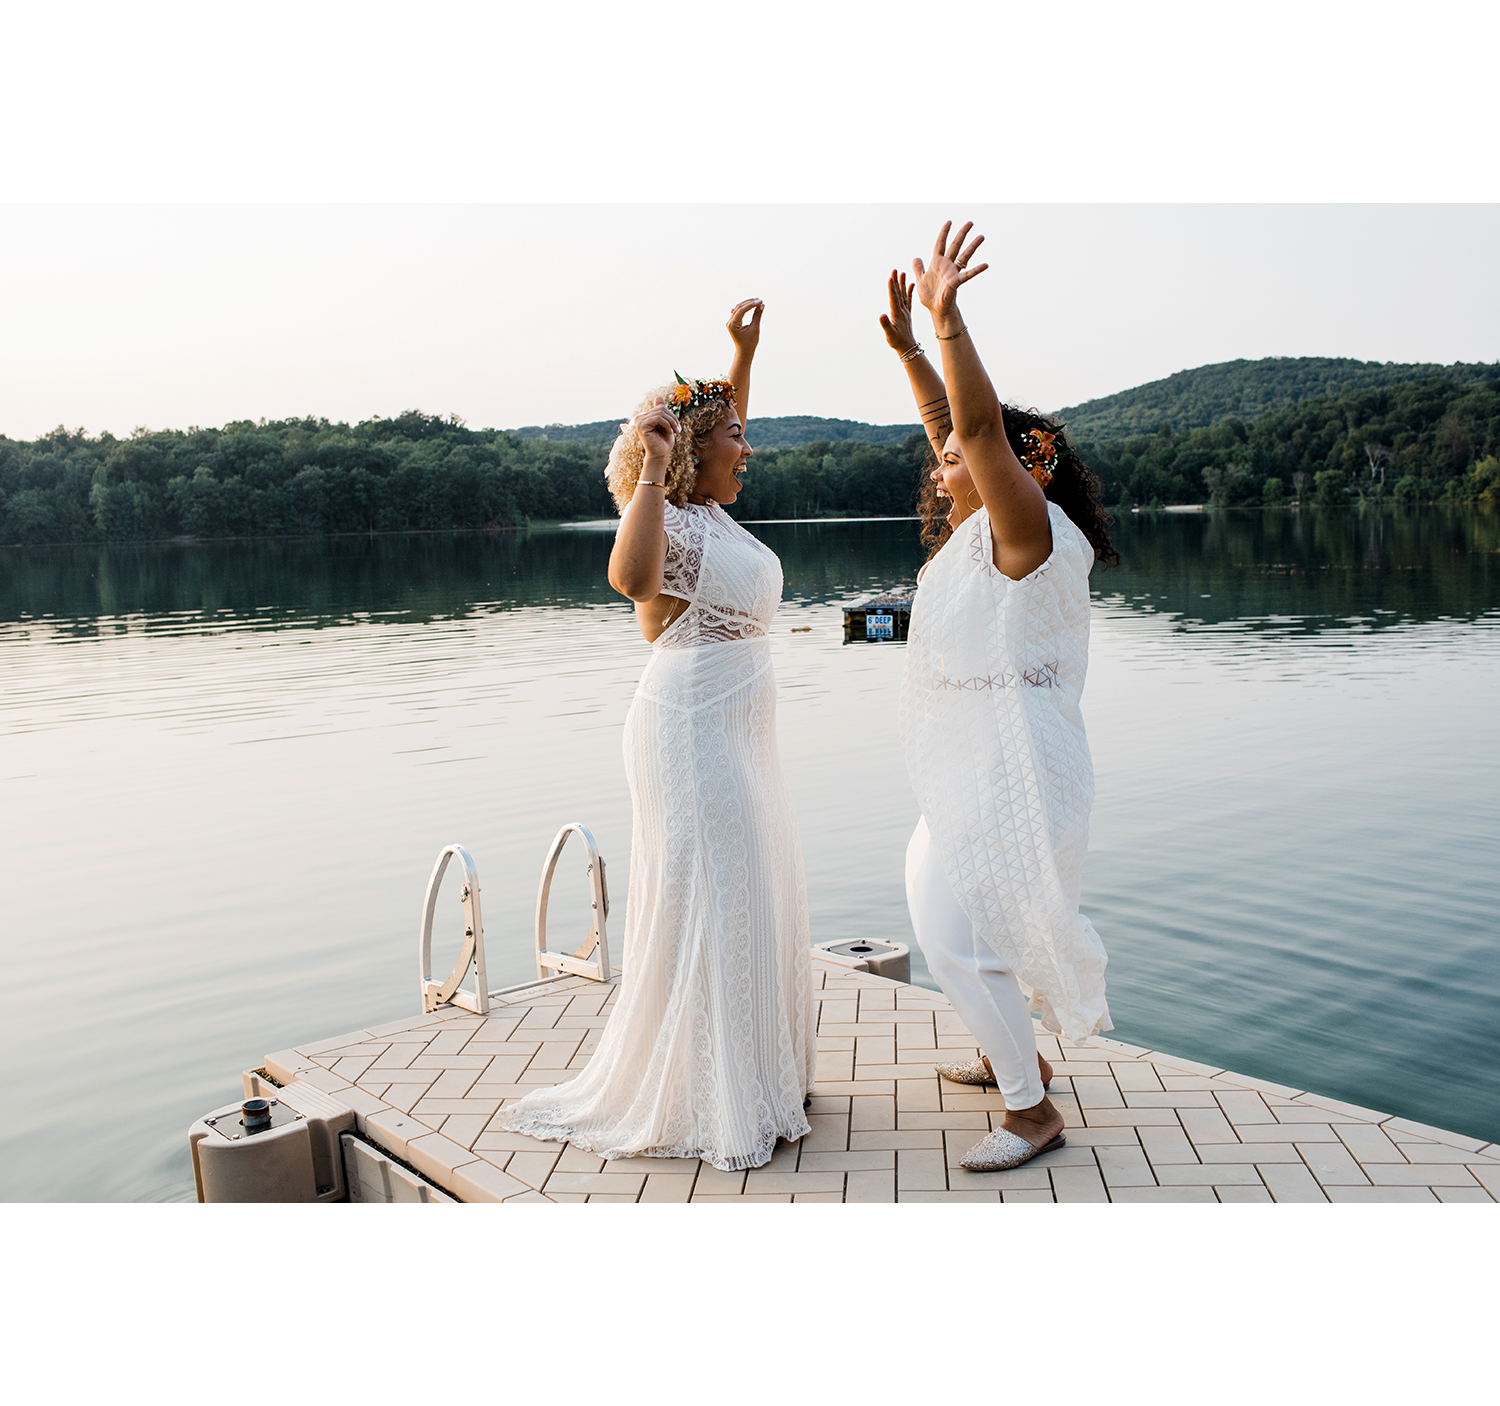 These casual BHLDN (left) and Ashaka Givens (right) ensembles were comfortable enough that the brides could jump for joy in them.